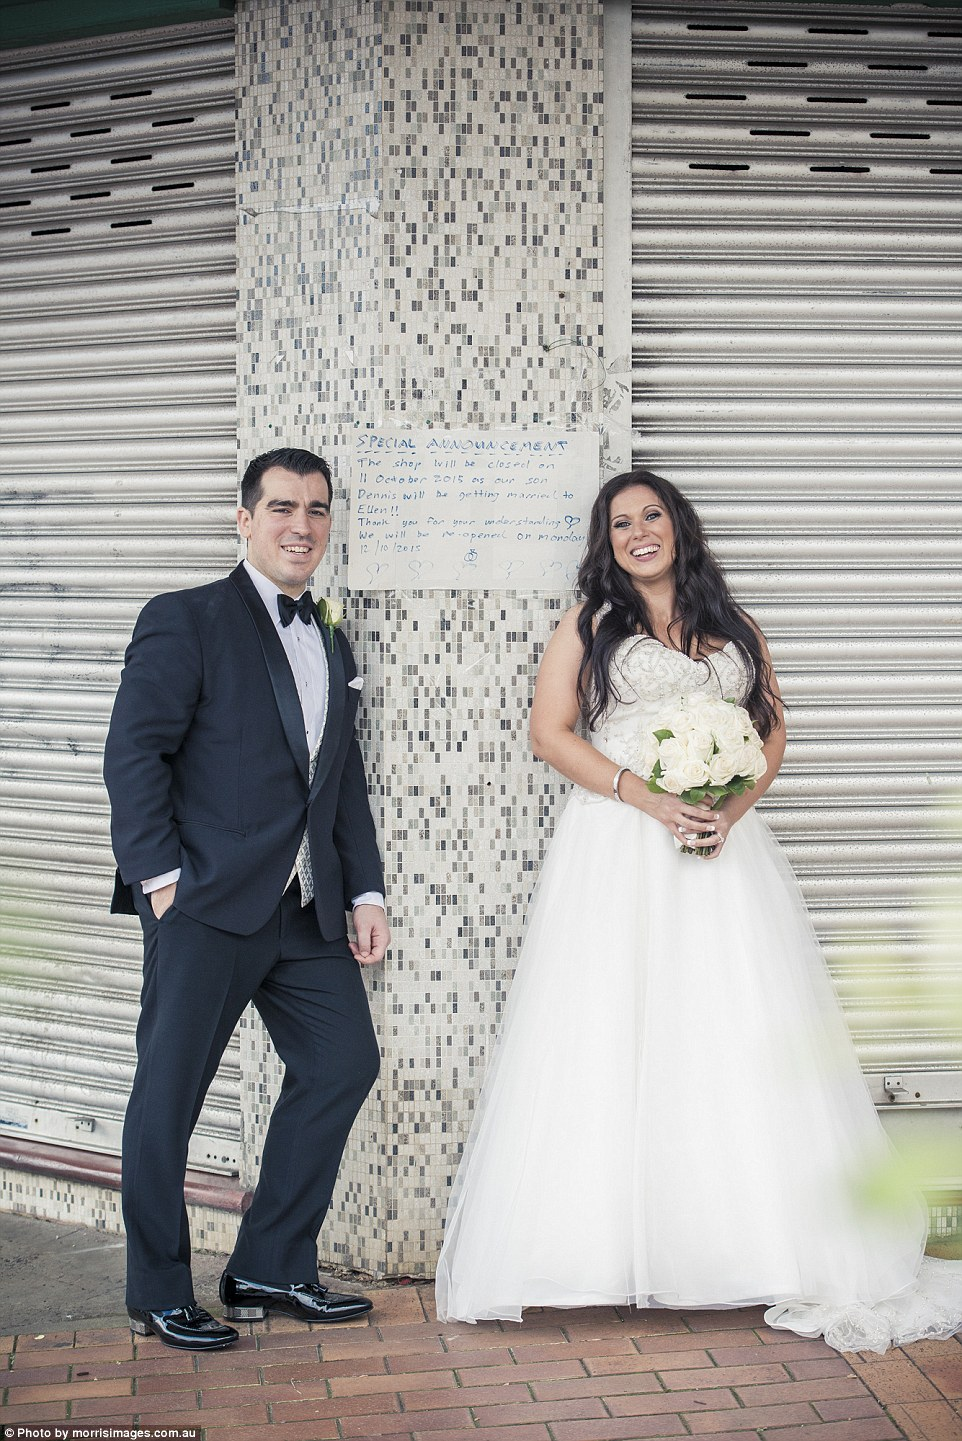 2D77CAD300000578-3275137-The_bride_and_groom_posed_outside_the_shop_on_their_wedding_day_-a-14_1444996850412.jpg